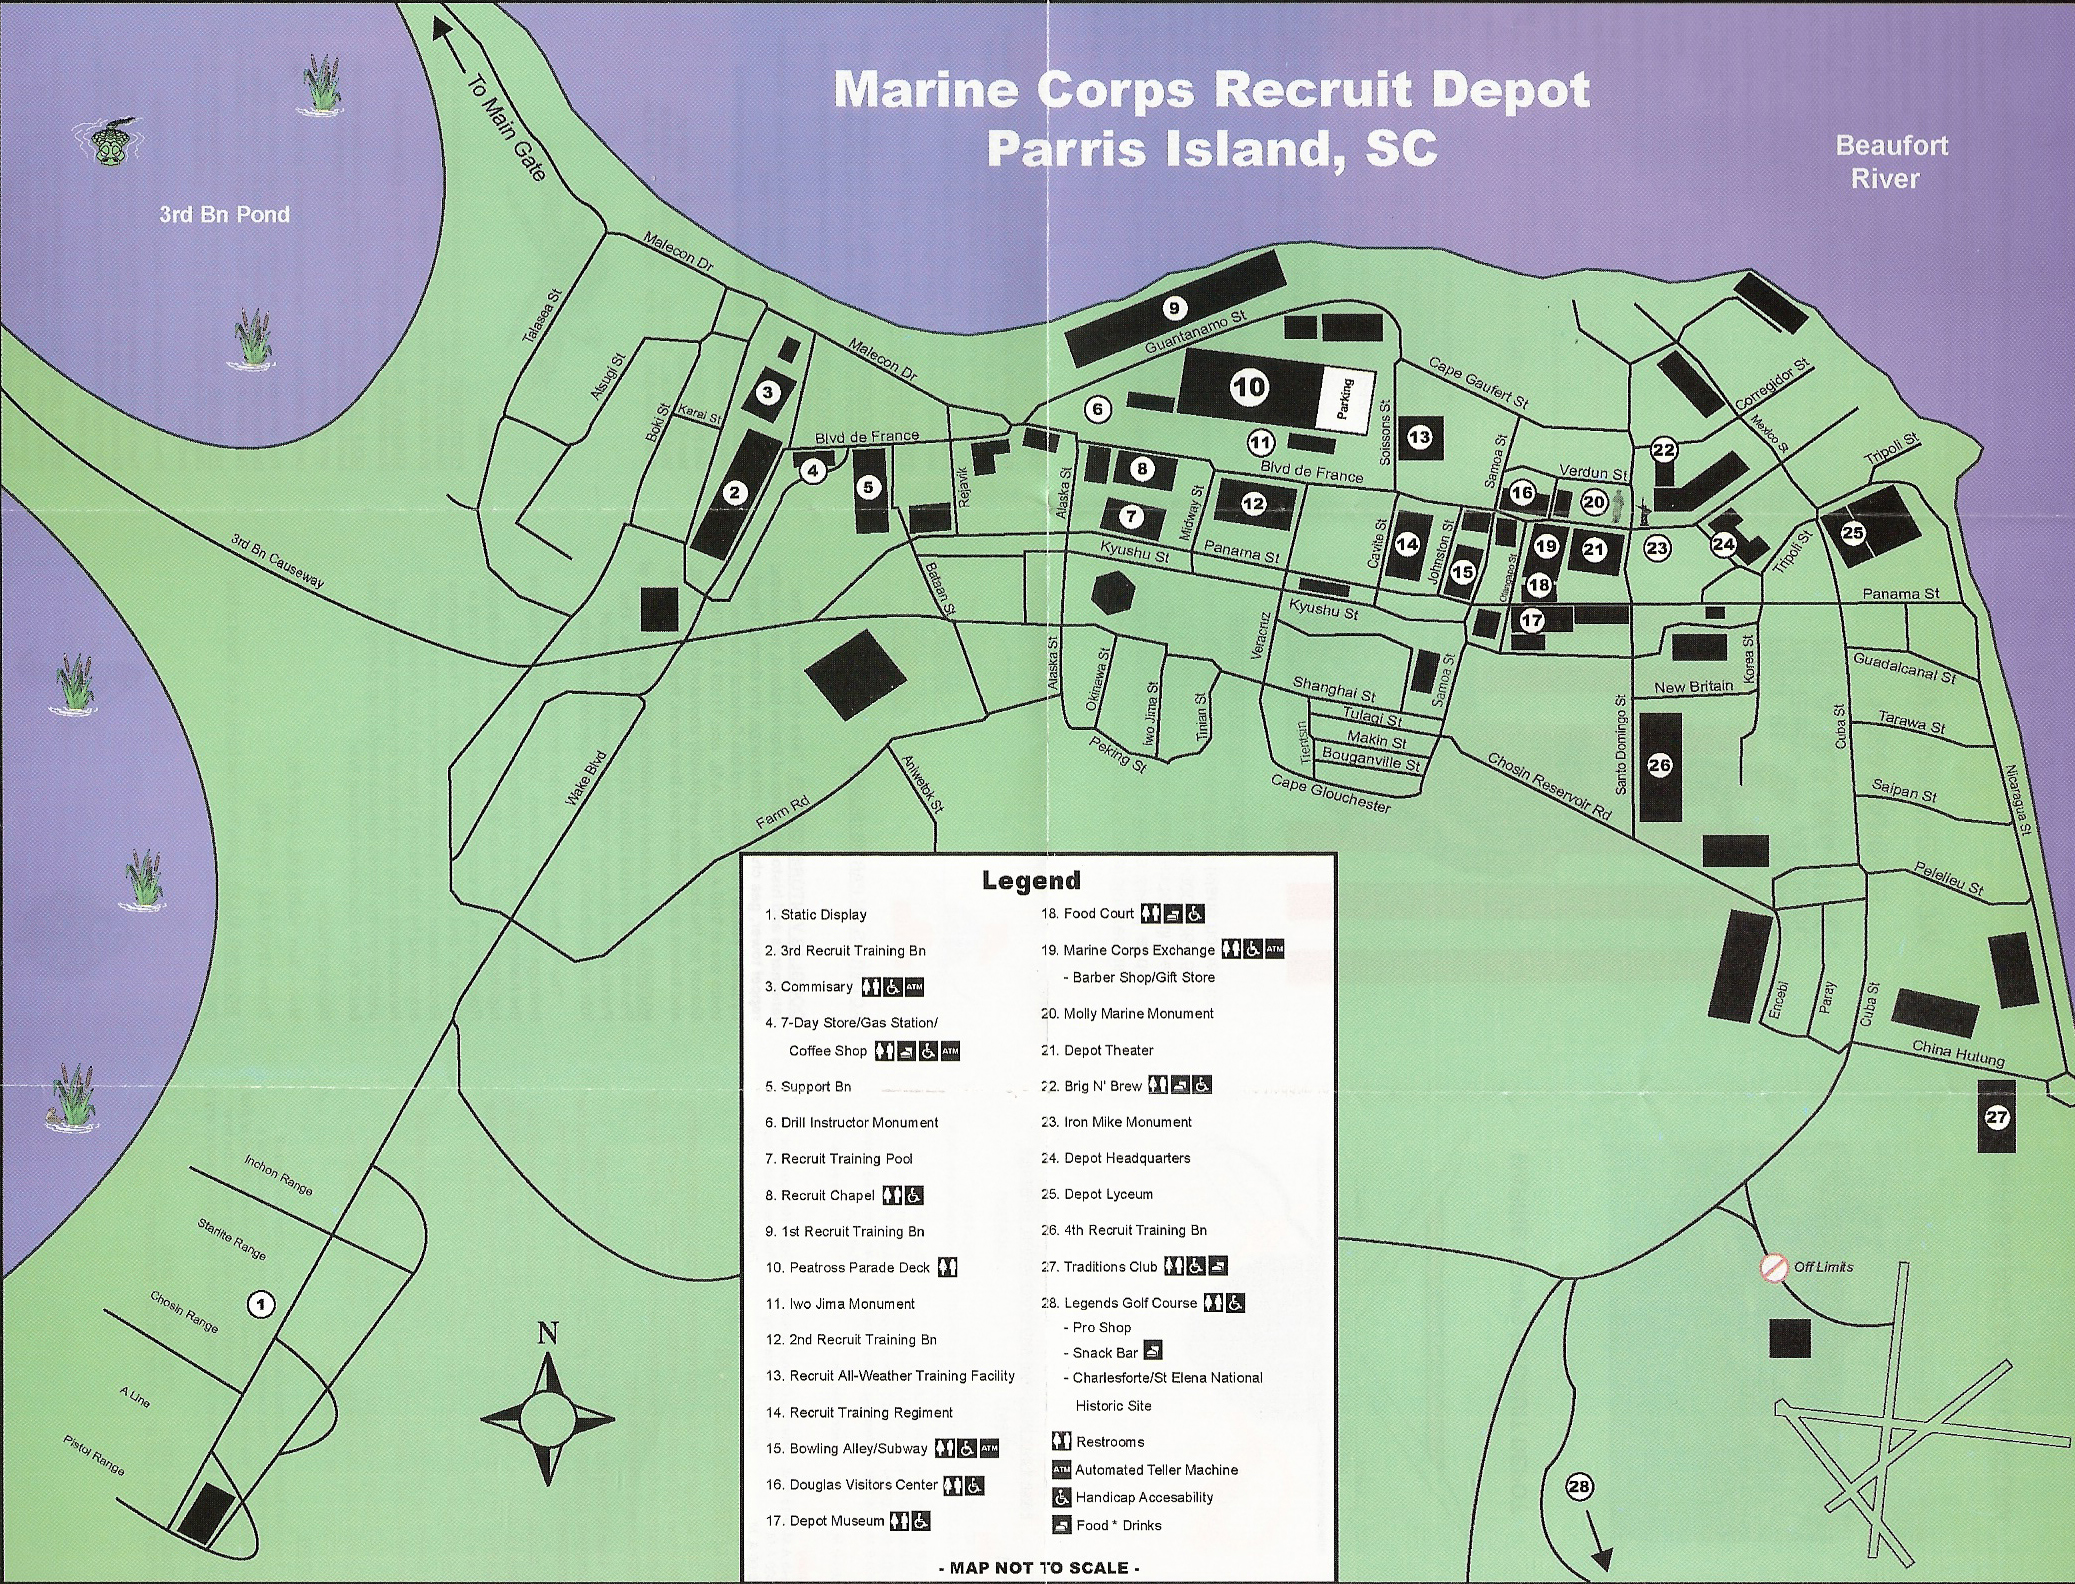 parris island marine corps recruit depot map  parris island south carolina• mappery. parris island marine corps recruit depot map  parris island south